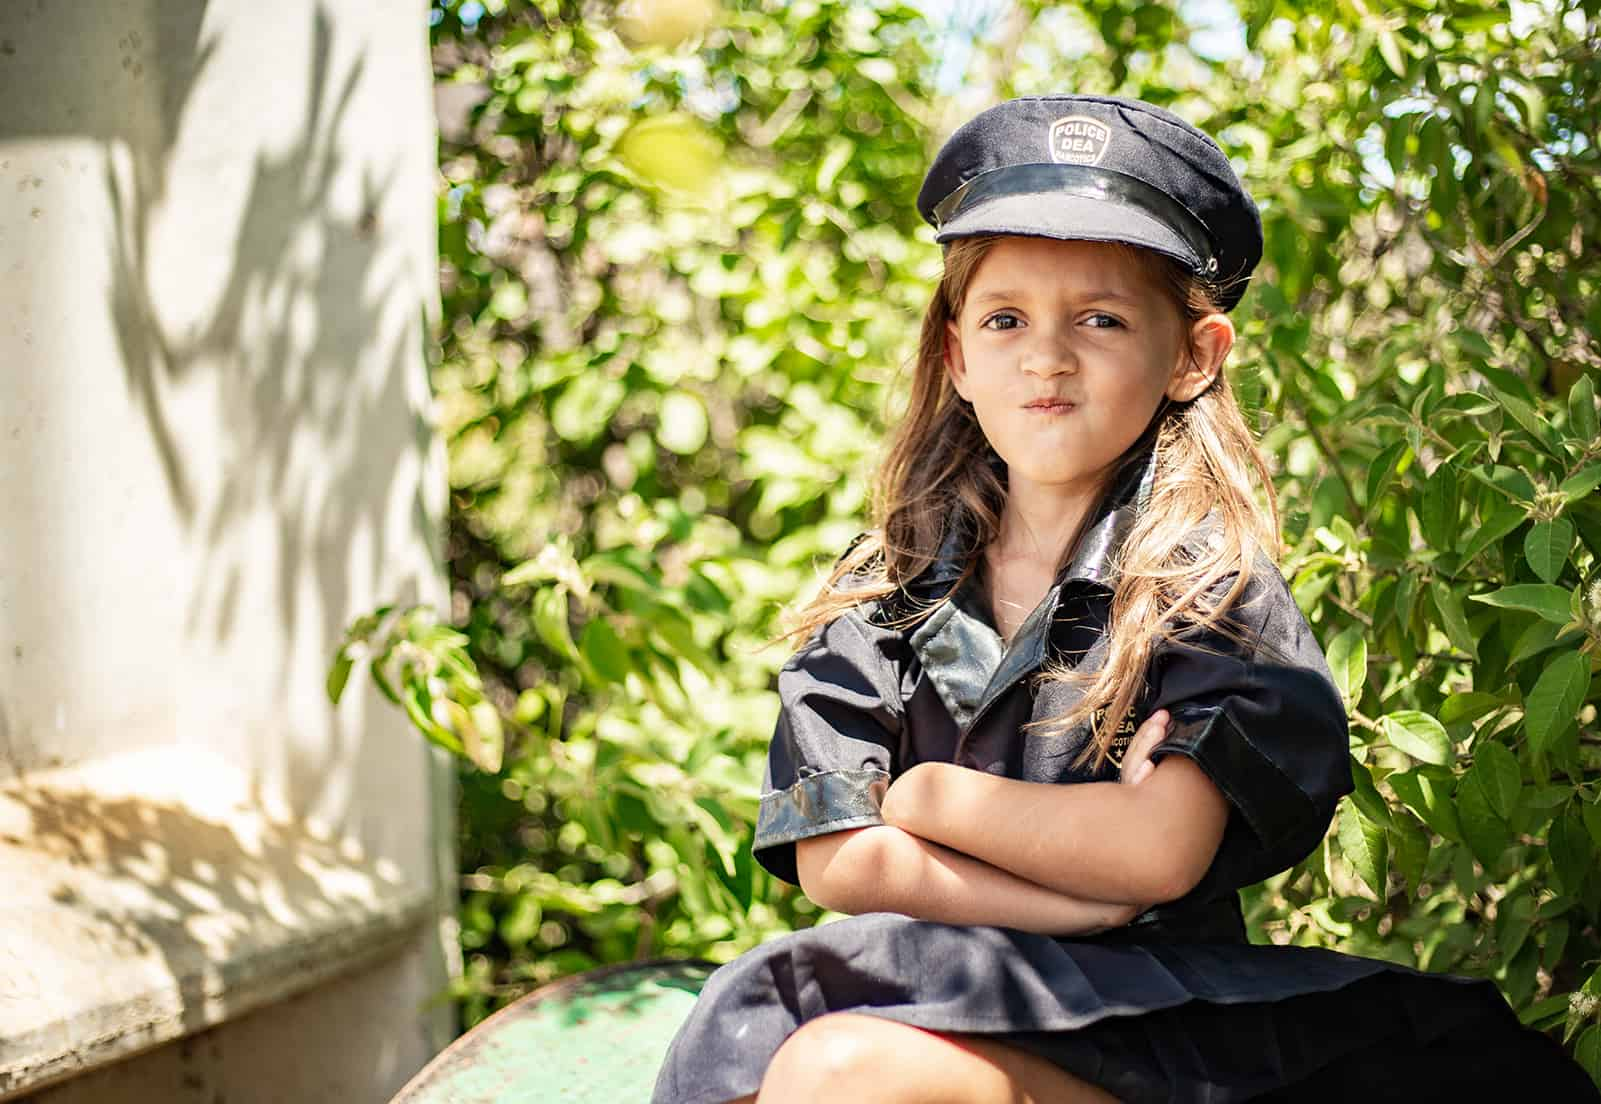 Little girl smirking, wearing a police uniform.